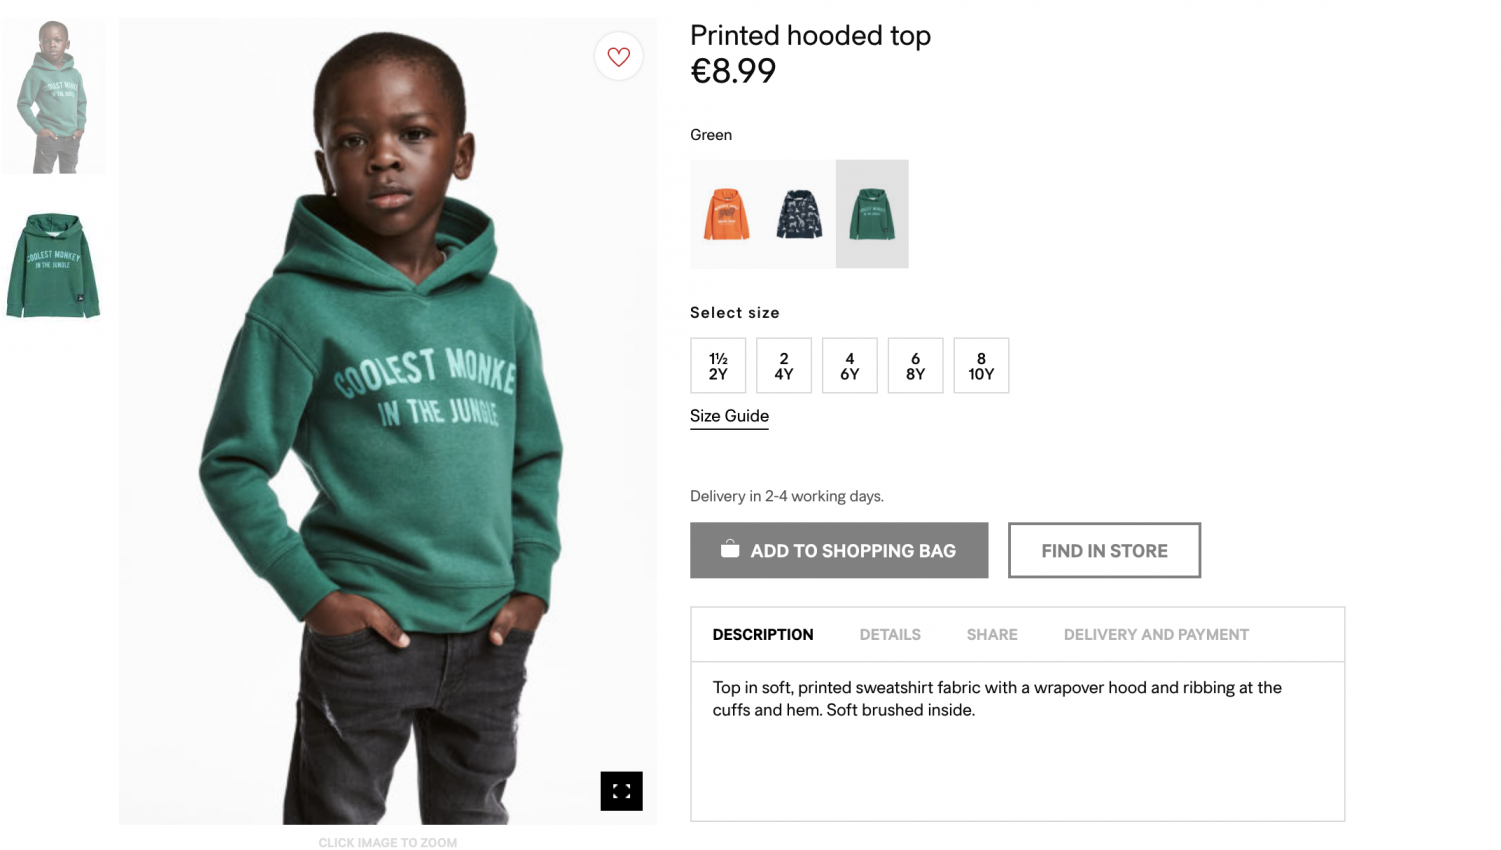 H&M's controversial advertisement